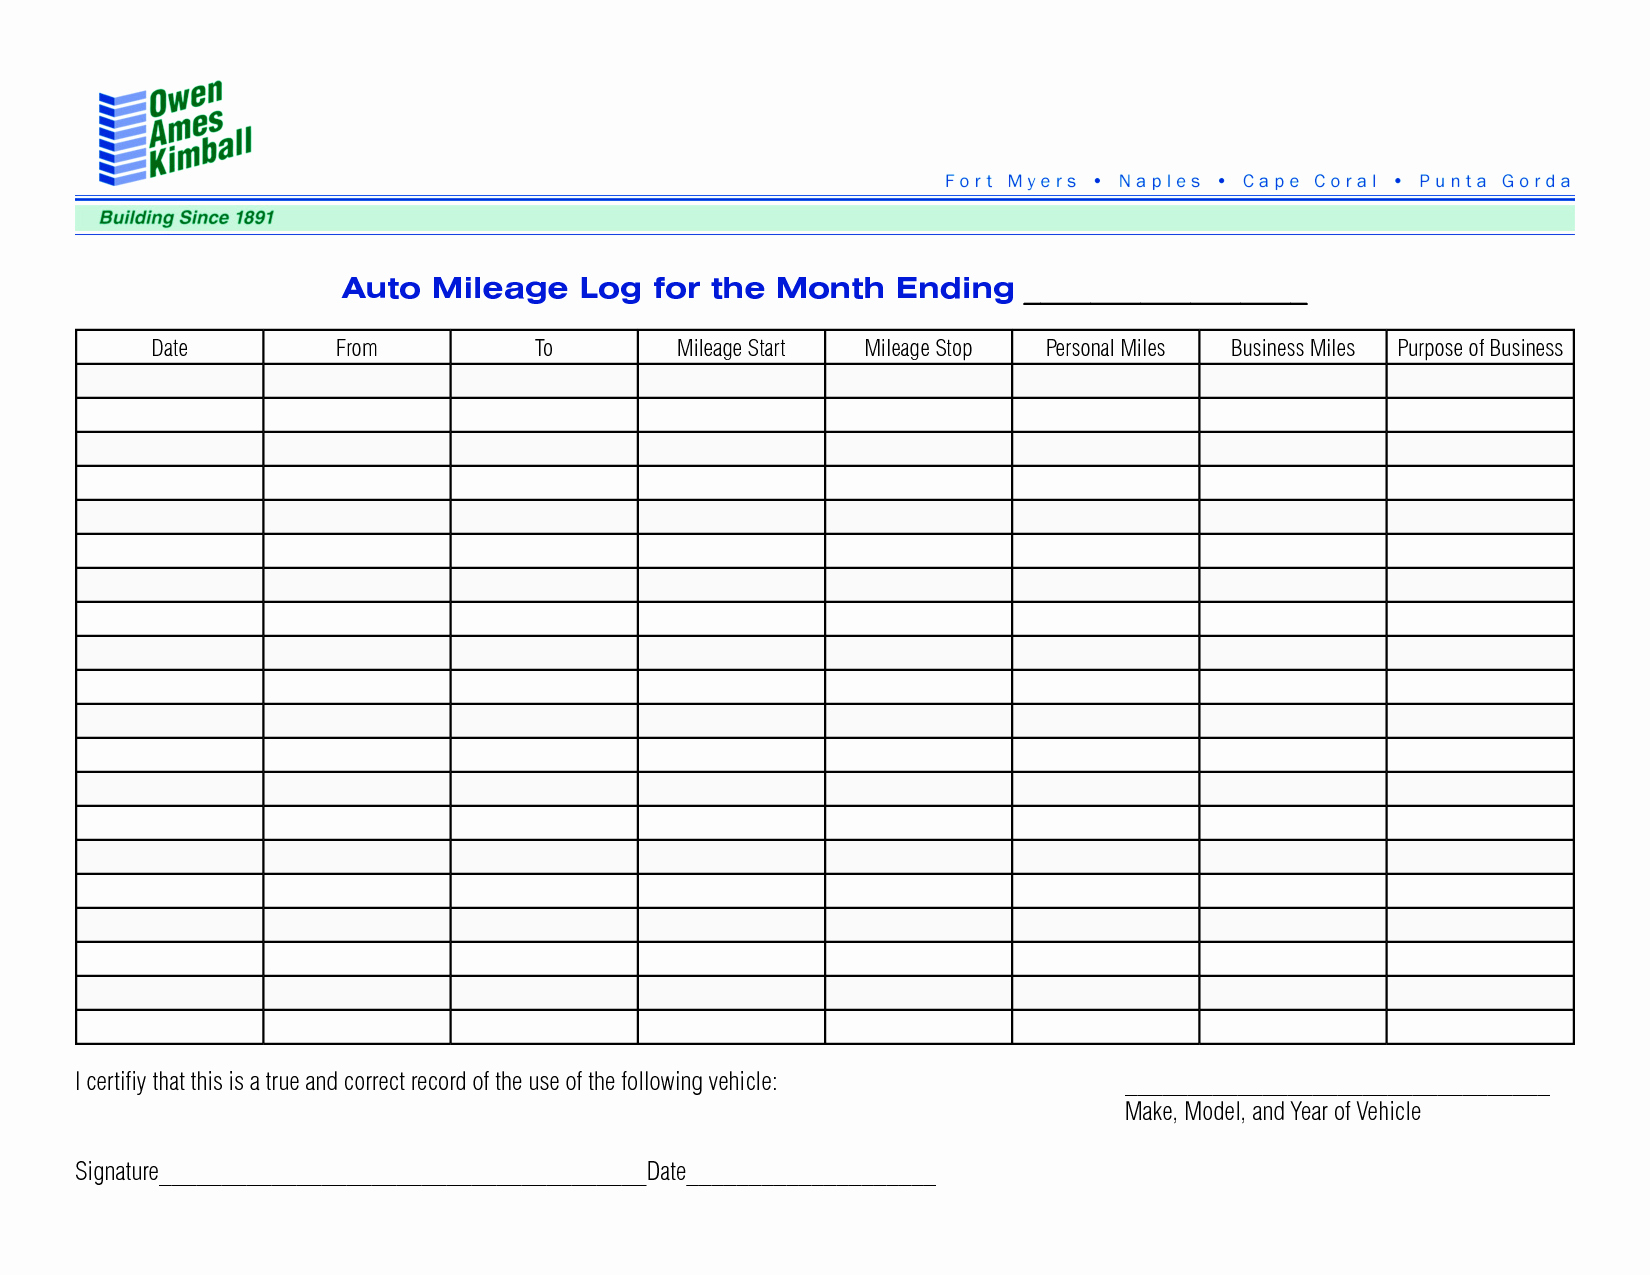 Workers Compensation Excel Spreadsheet Within Form Templates Mileage Spreadsheet For Irs Awesome Template Vehicle